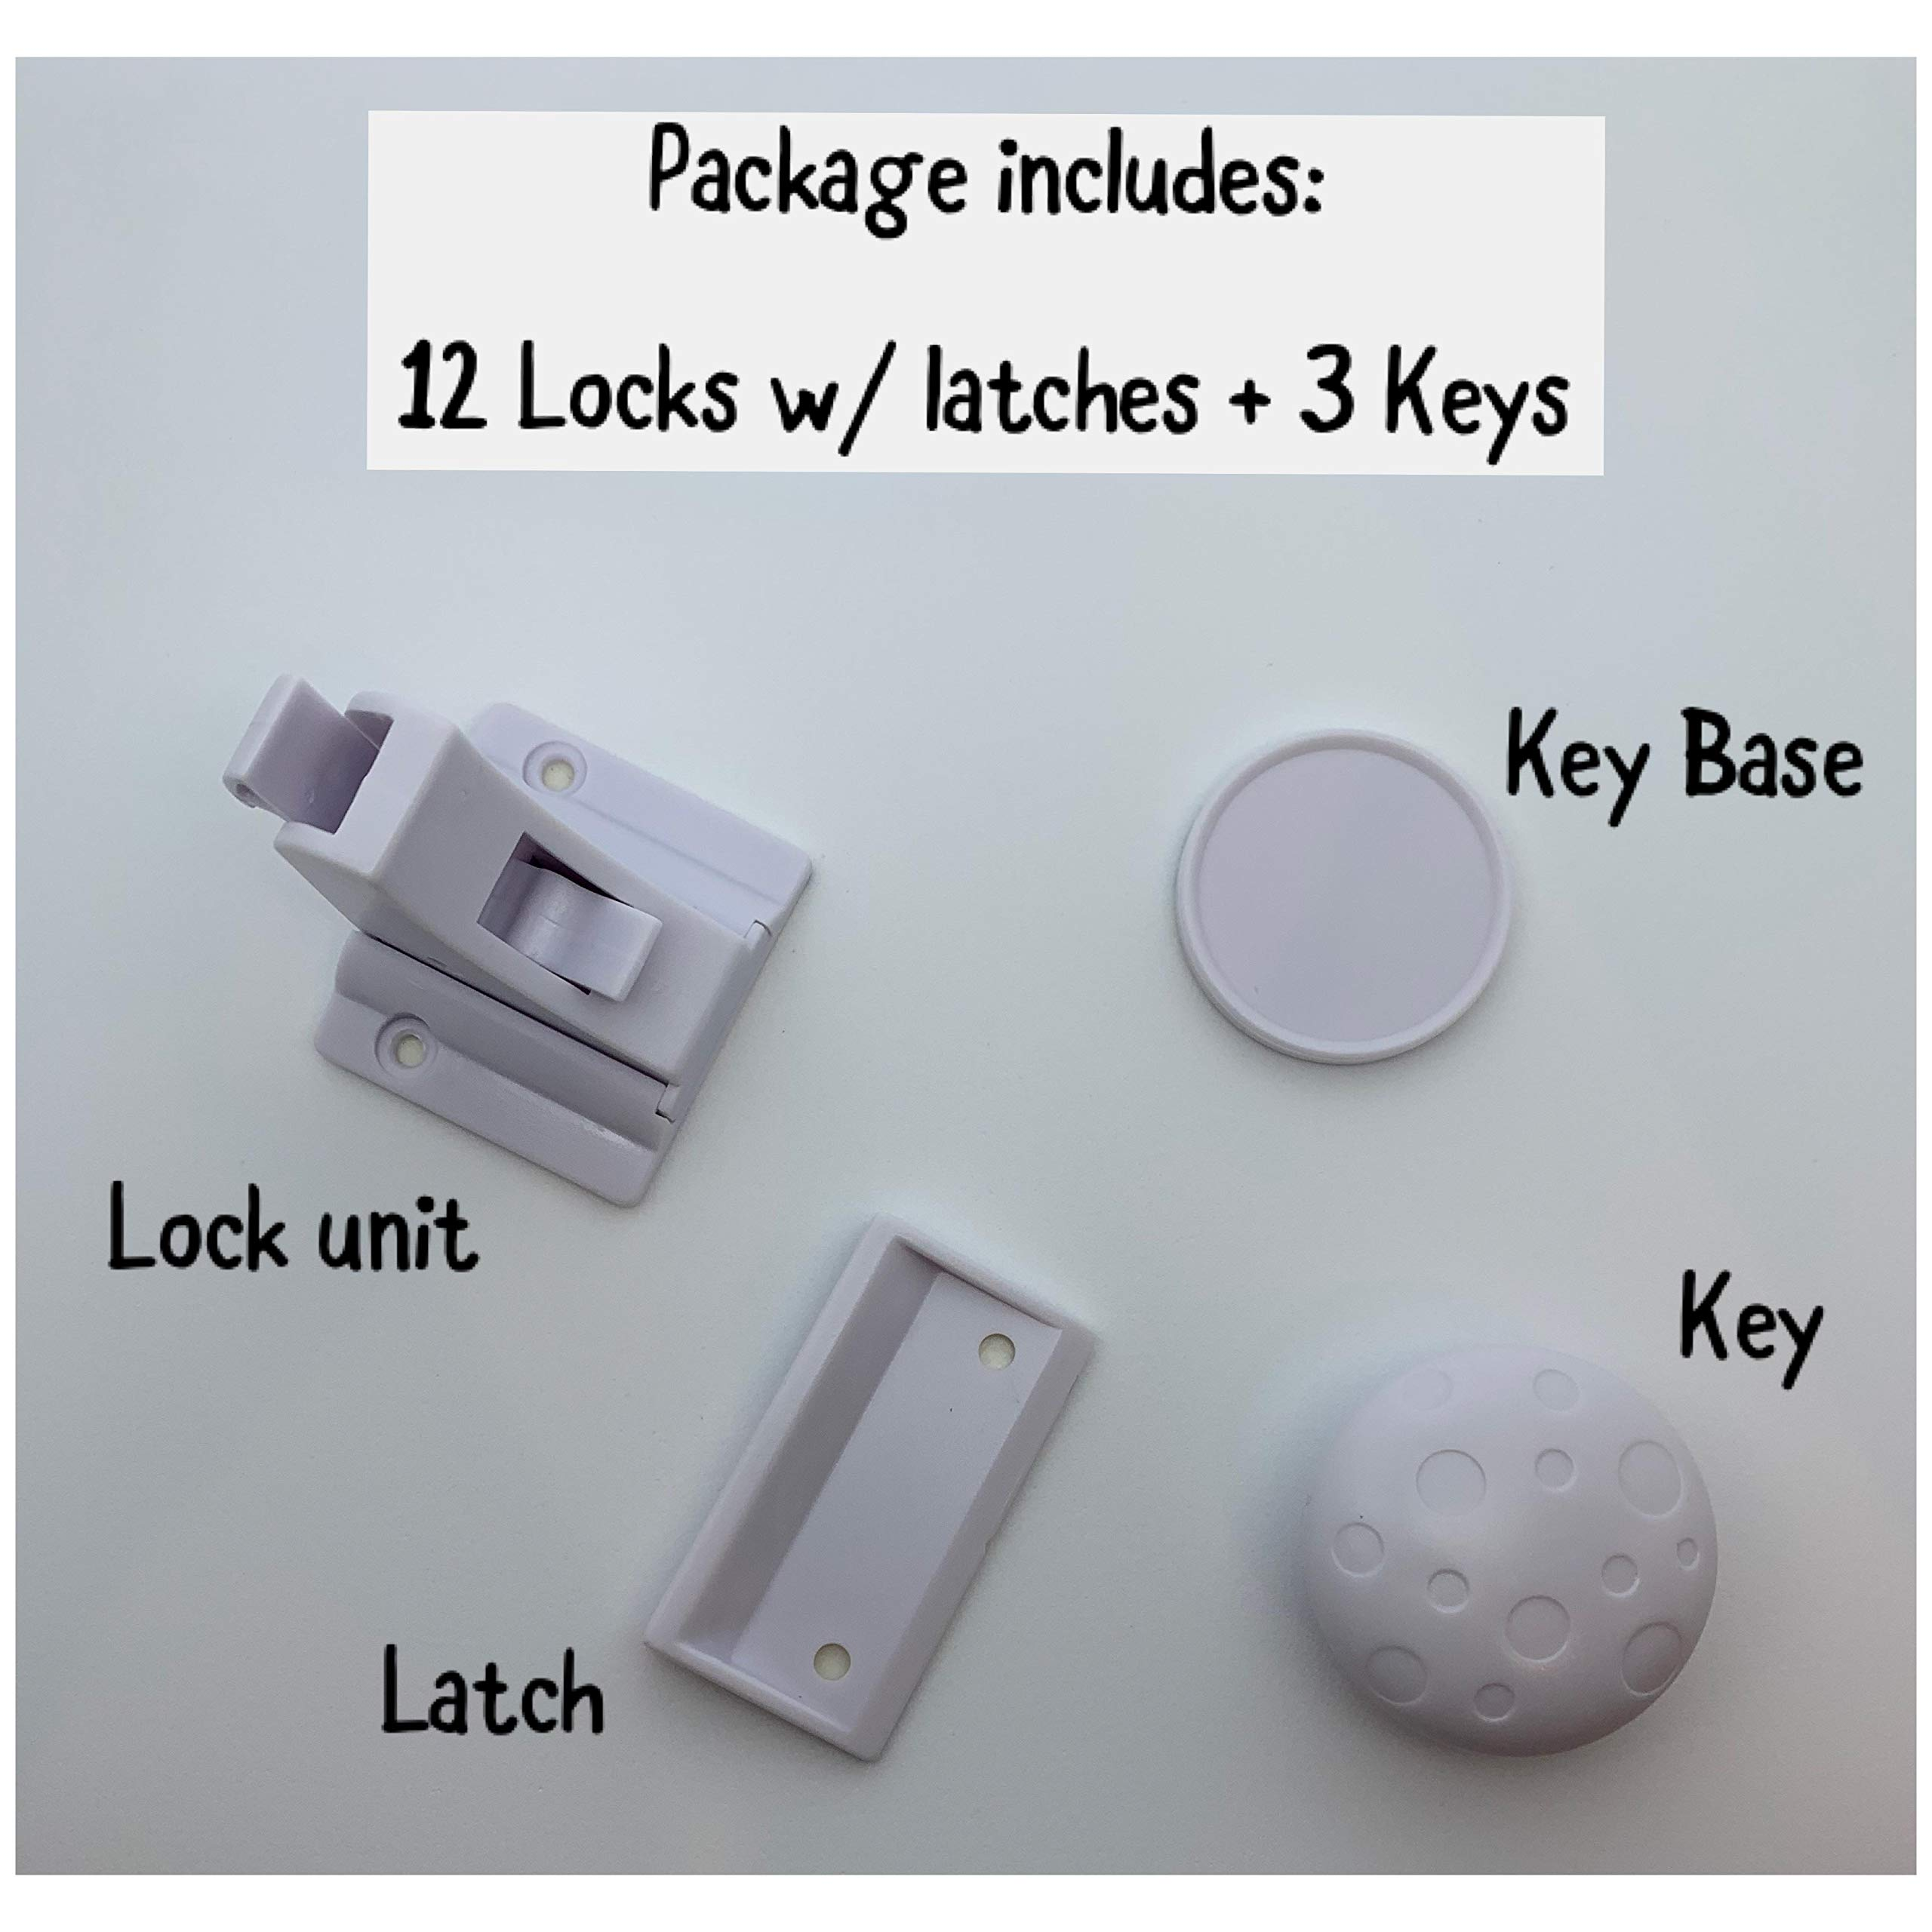 Country Kidz Magnetic Baby Proof Locks- 12 Safety Locks with 3 Keys- for Child proofing cabinets- Child and Baby Proof- 3M Adhesive Glue- No Screws- No Drilling- No Tools- Quick and Easy I